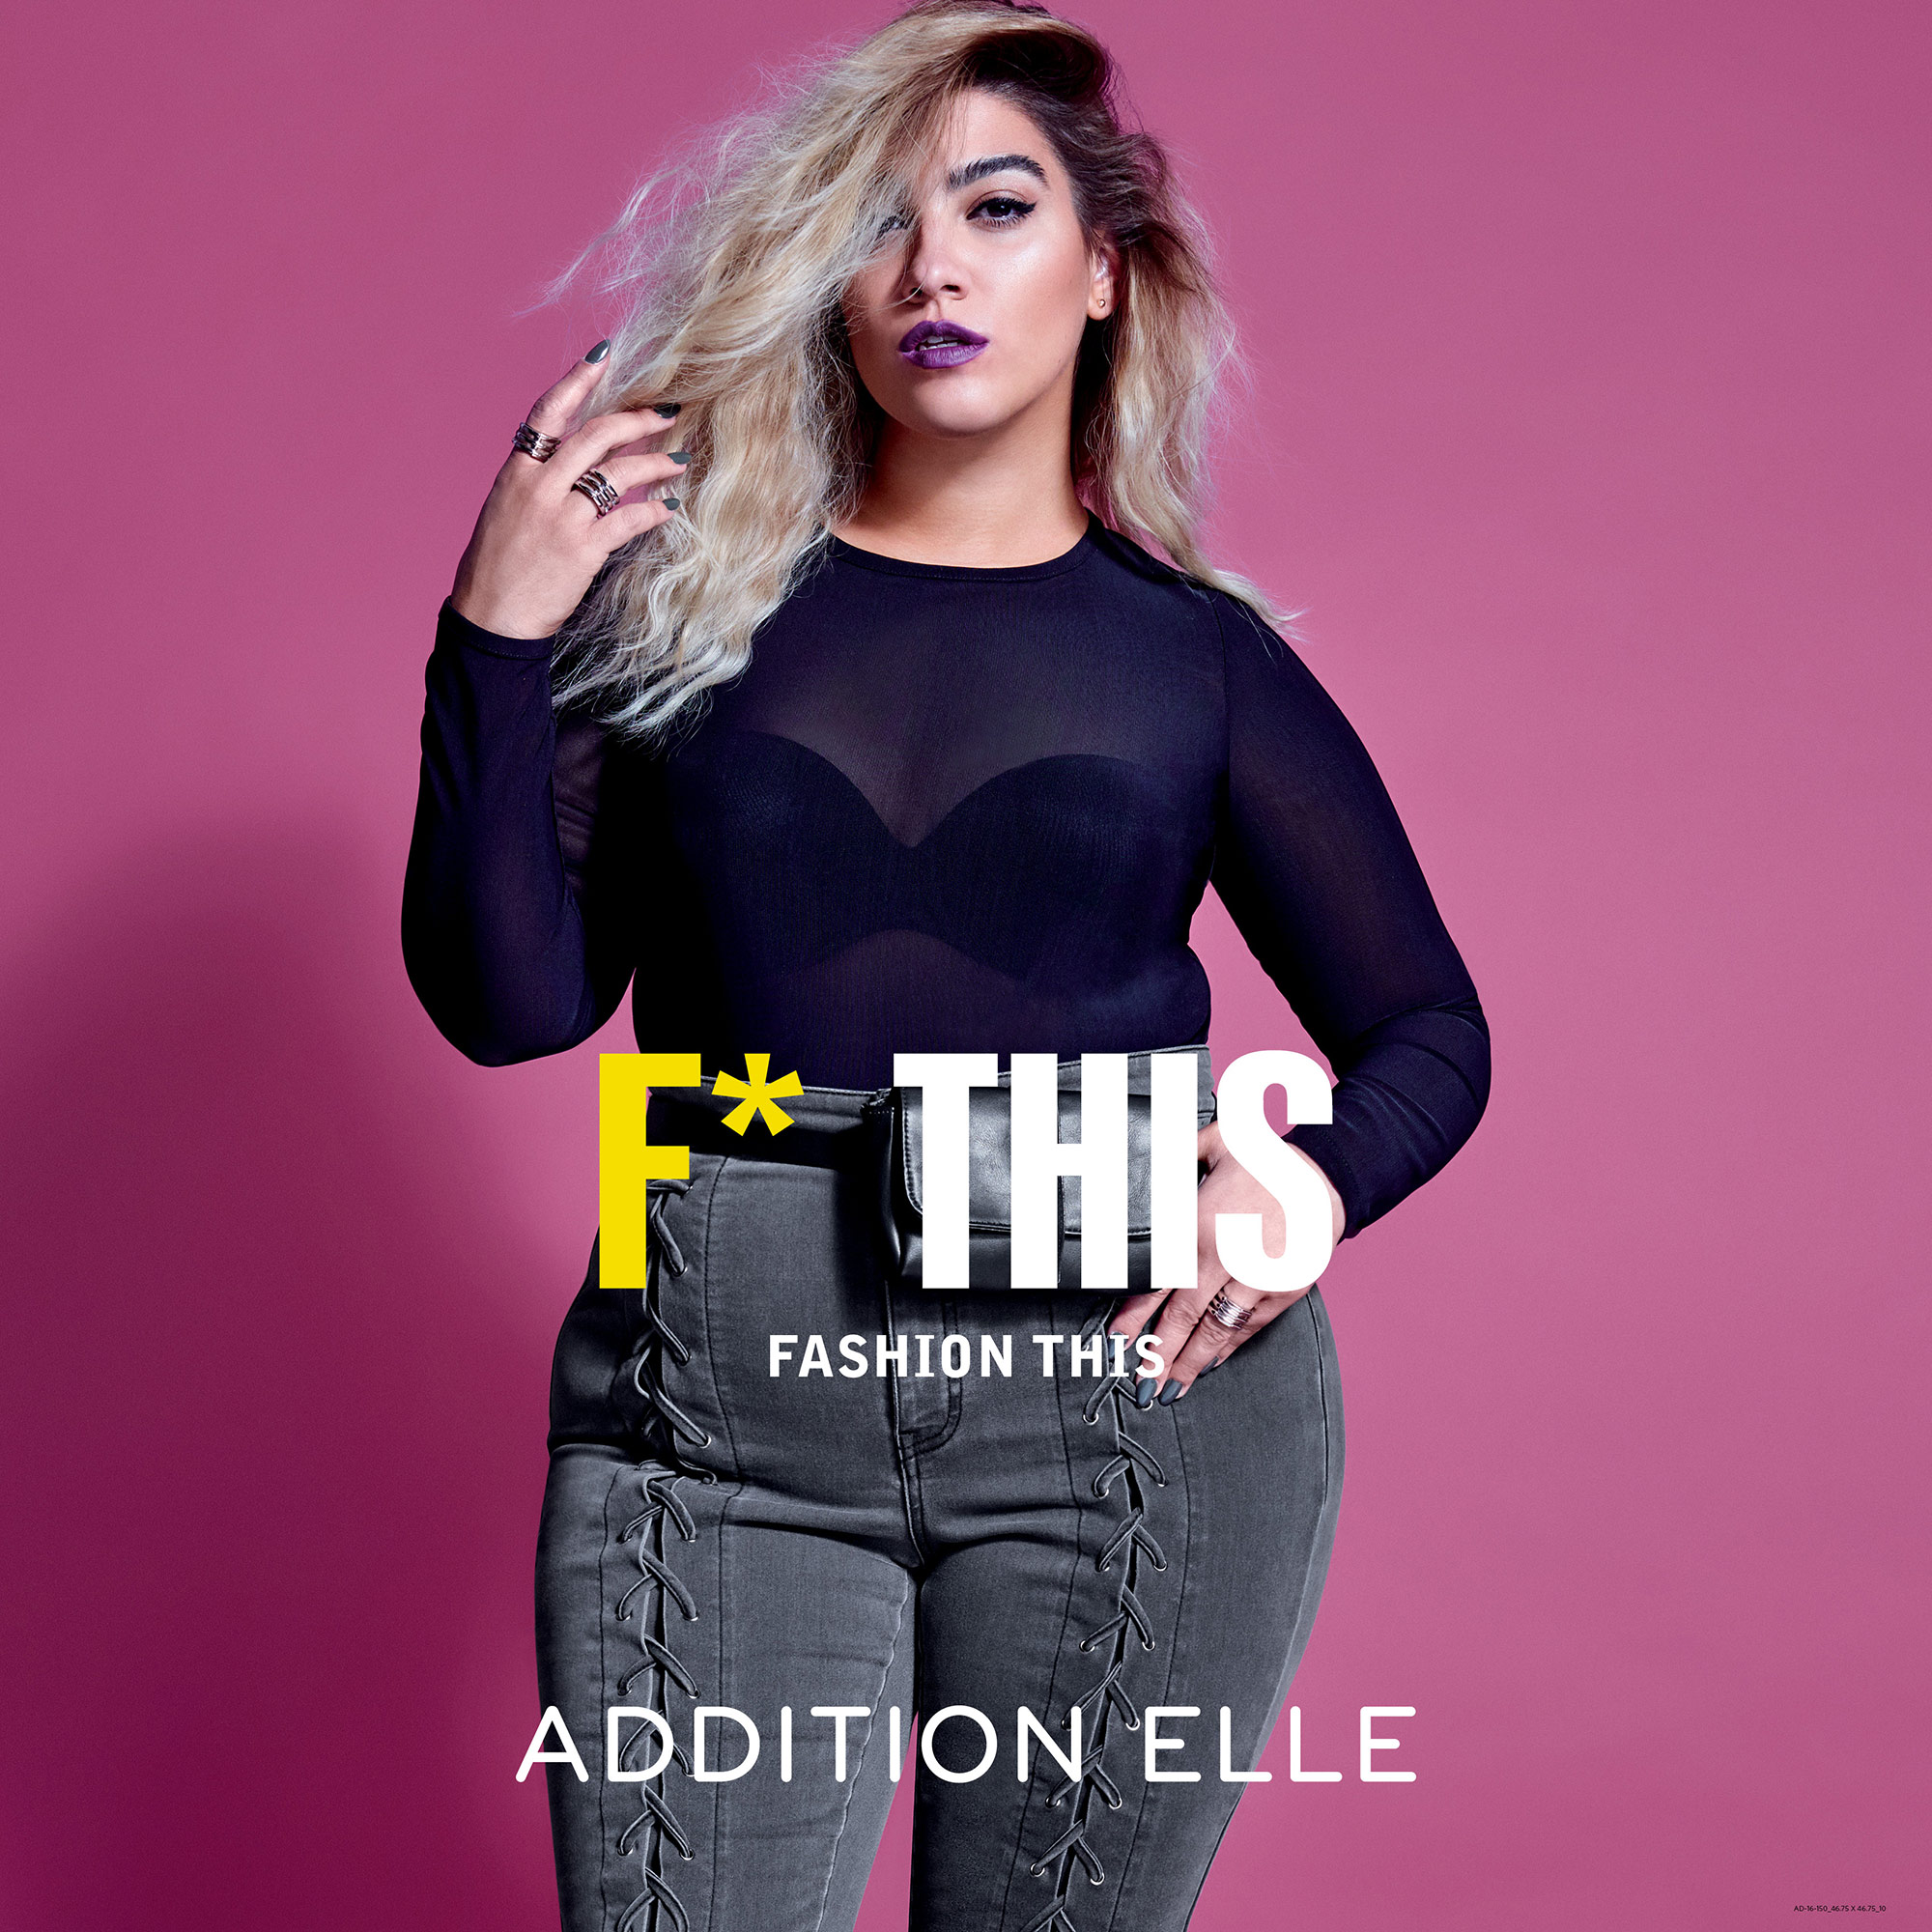 Addition Elle Campaign - Embed 3